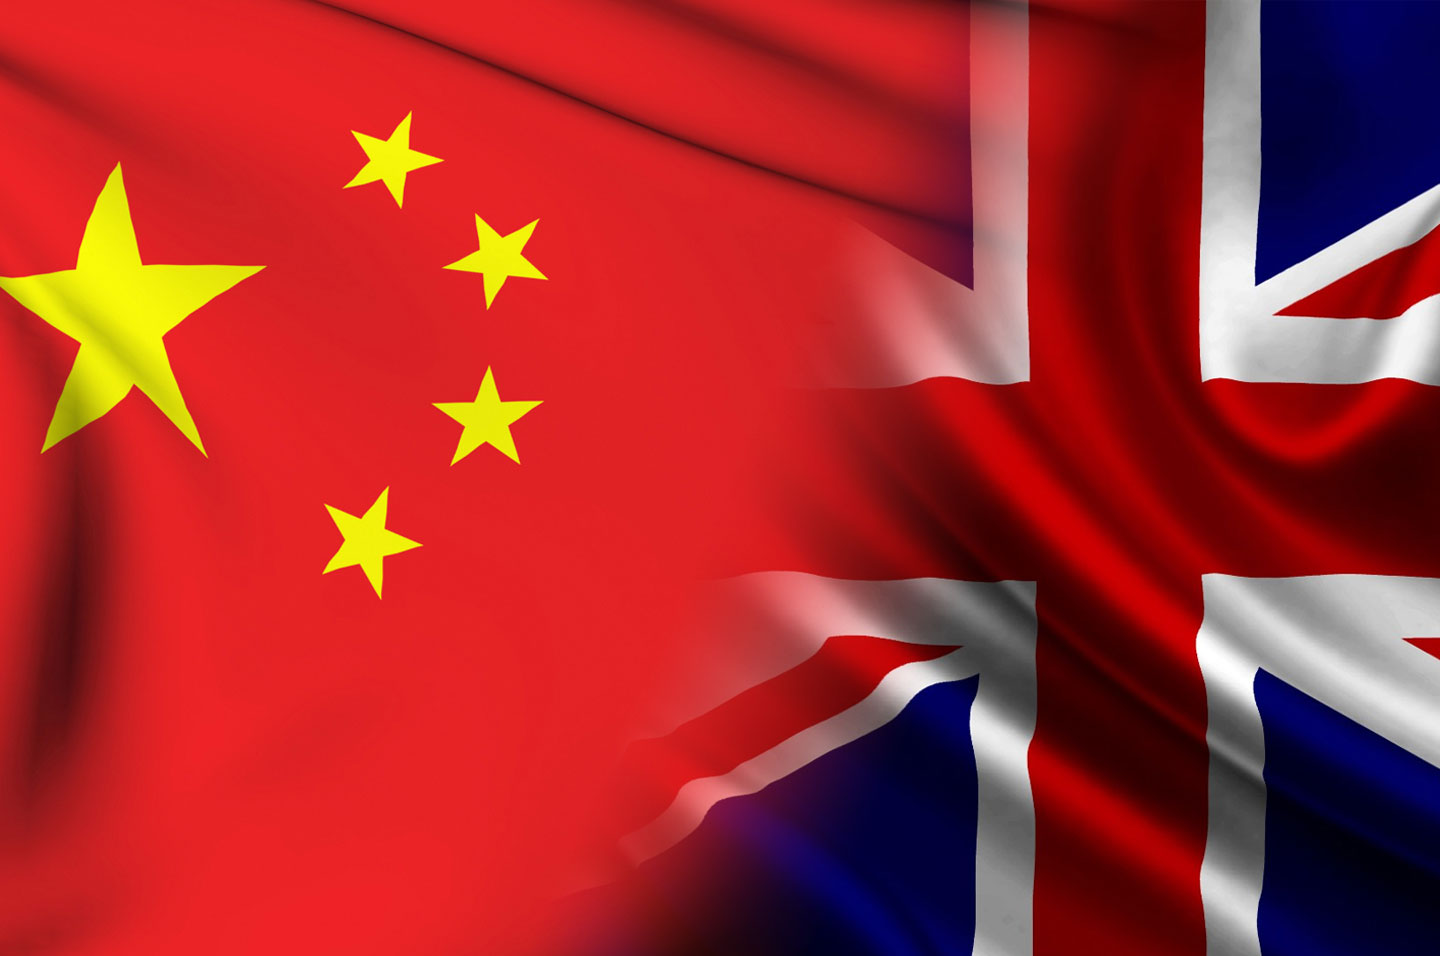 Transfer your money from anywhere in a World to the most secure HSBC Bank. In England or Hong Kong branches